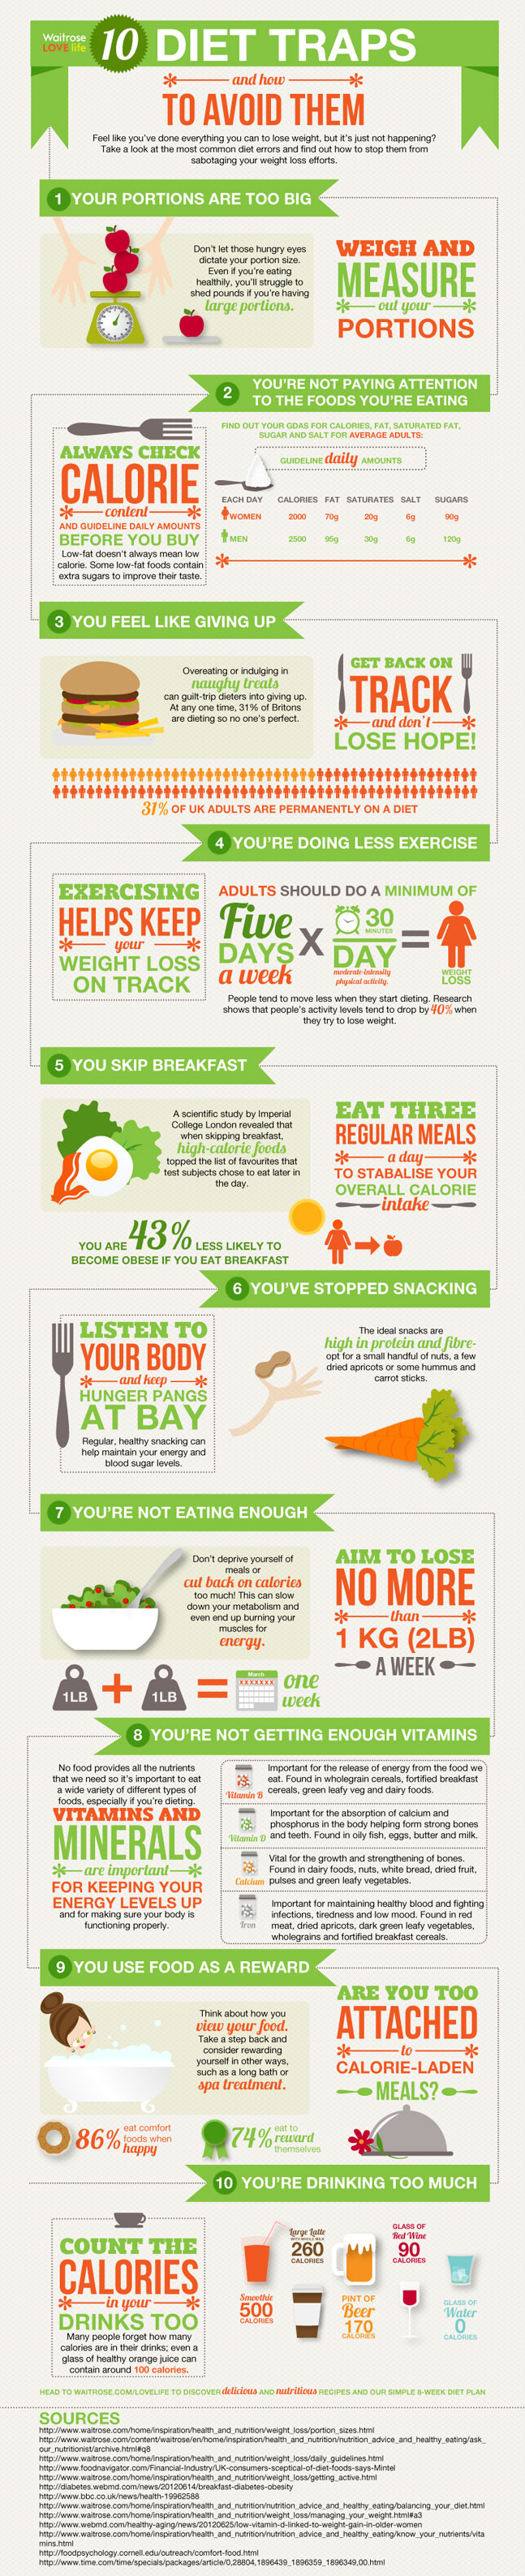 10 Traps to Avoid When Dieting